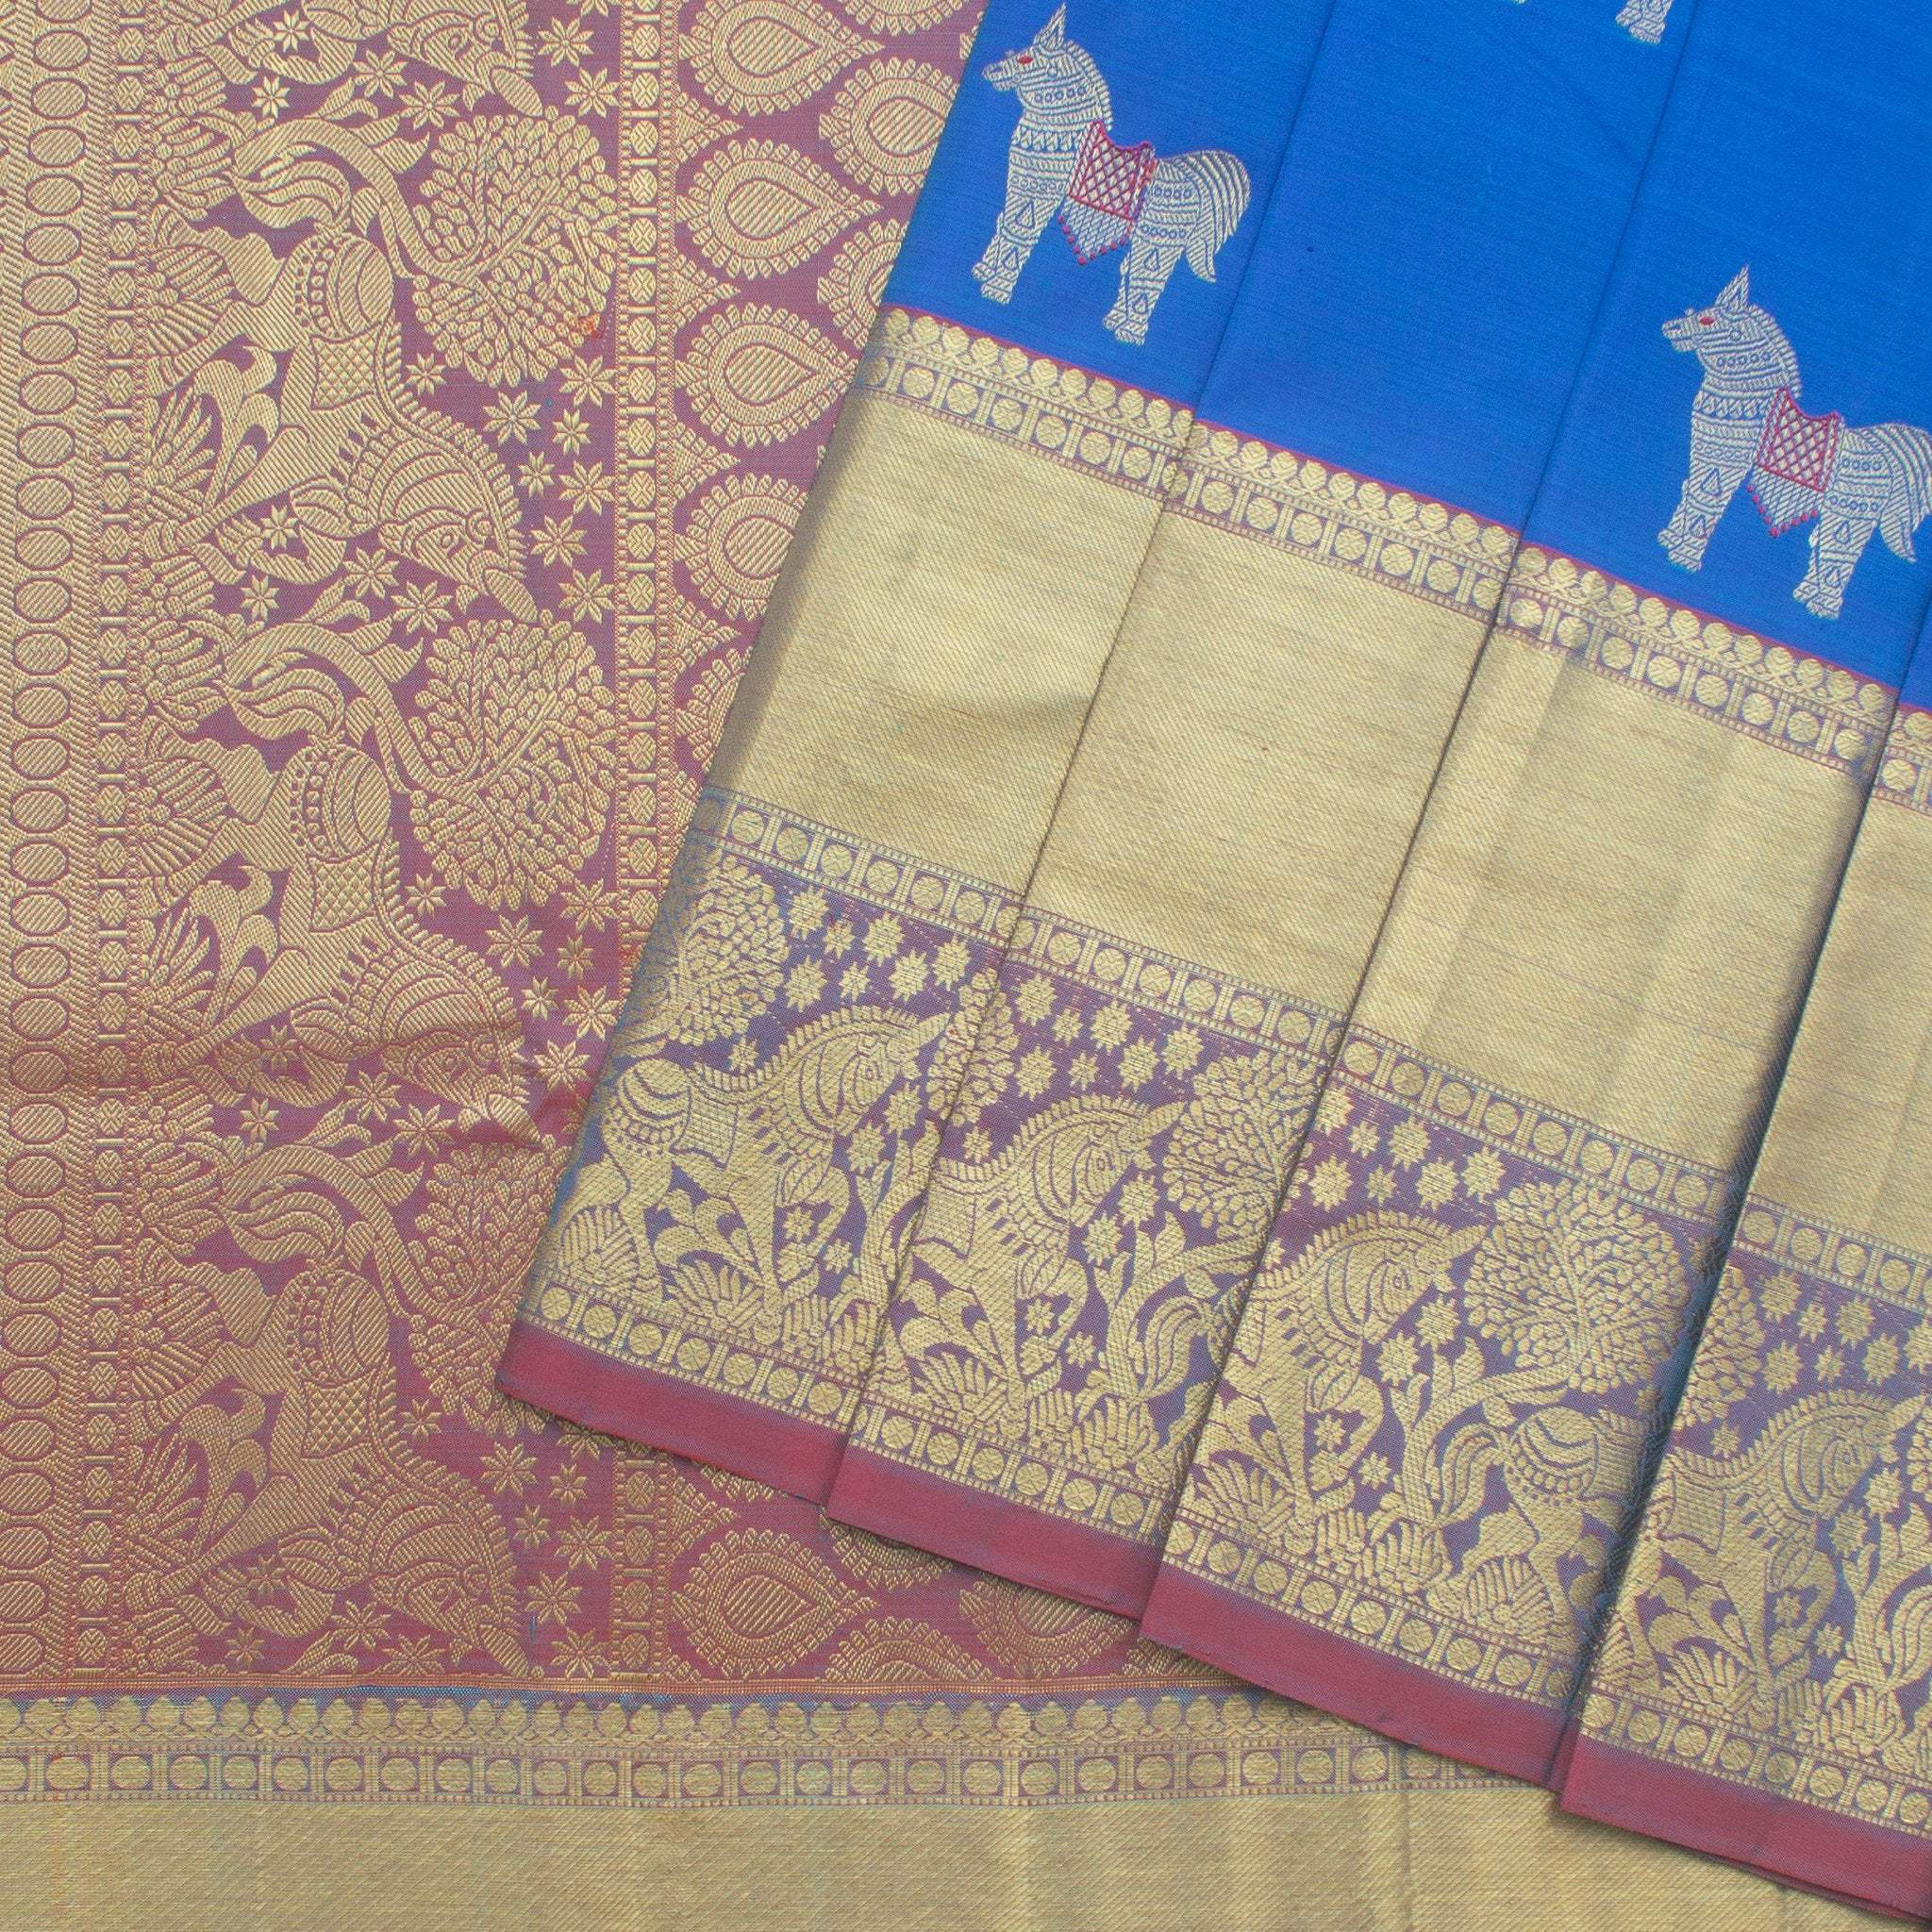 Deep-Aqua-Blue-Kanjivaram-Silk-Handloom-saree-With-Horse-Motifs